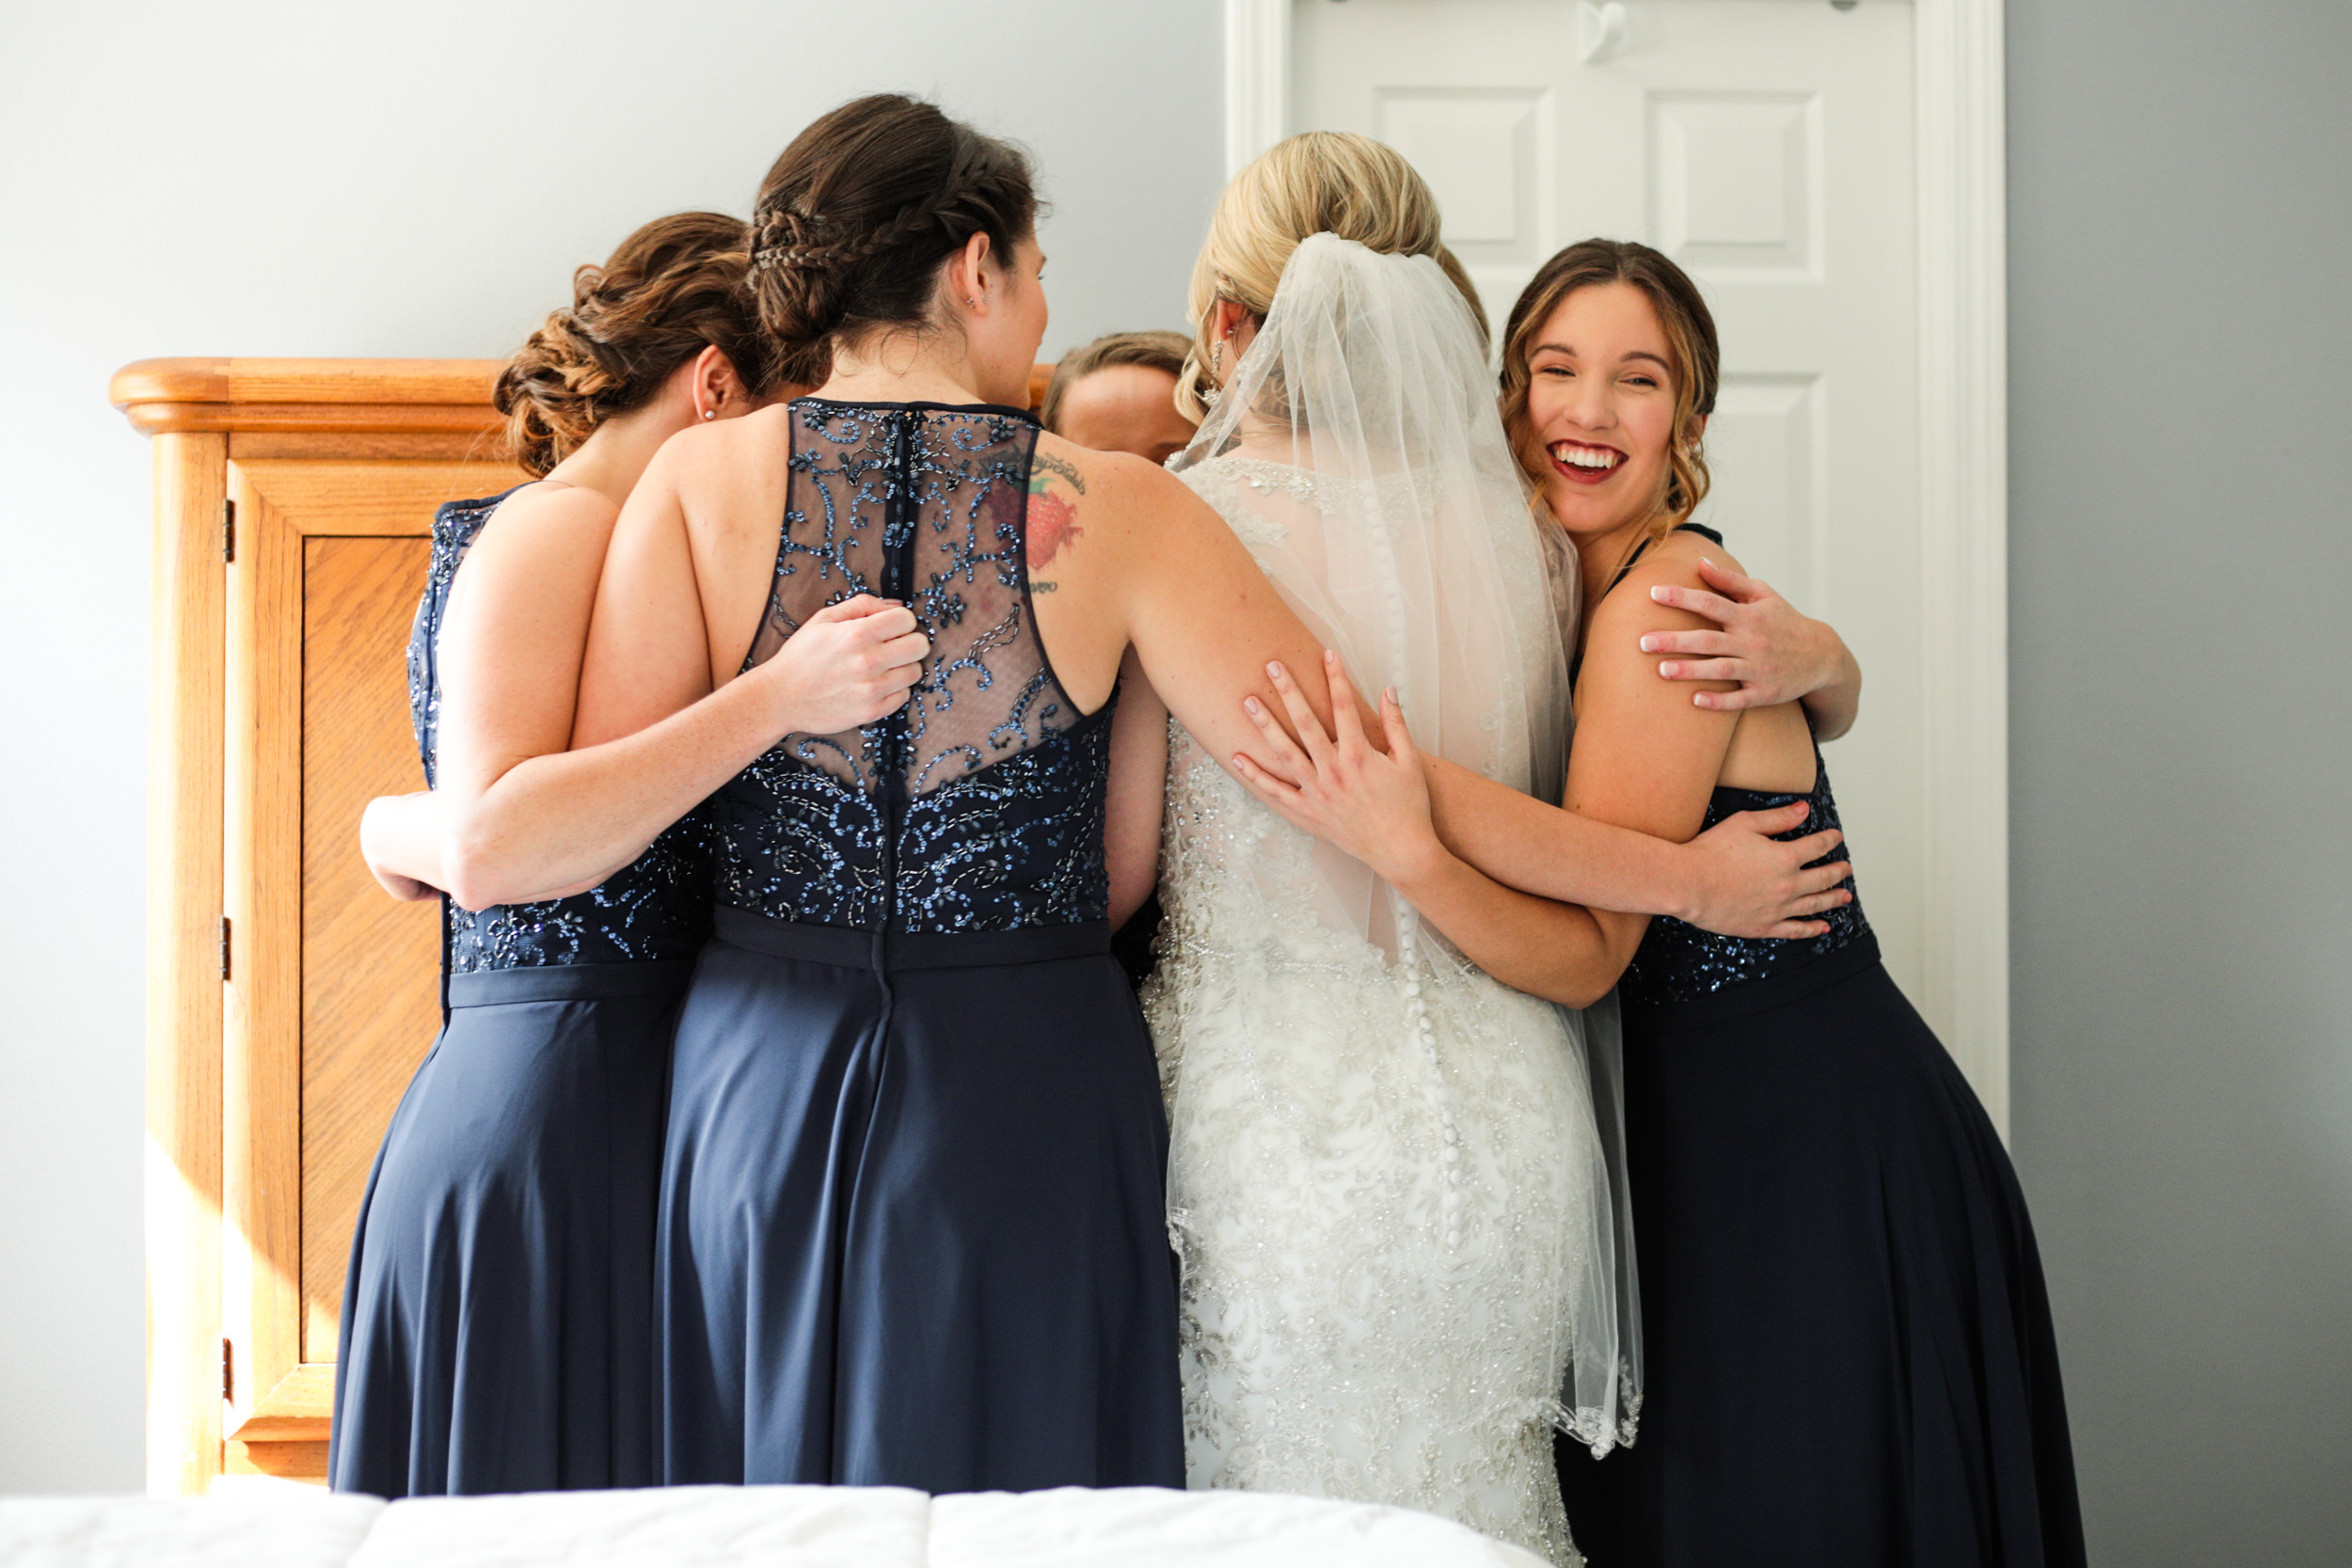 Winstanley Baptist Church Wedding and Four Points by Sheraton Reception Photos by St Louis Wedding Photographers and Videographers Oldani Photography 42.jpg